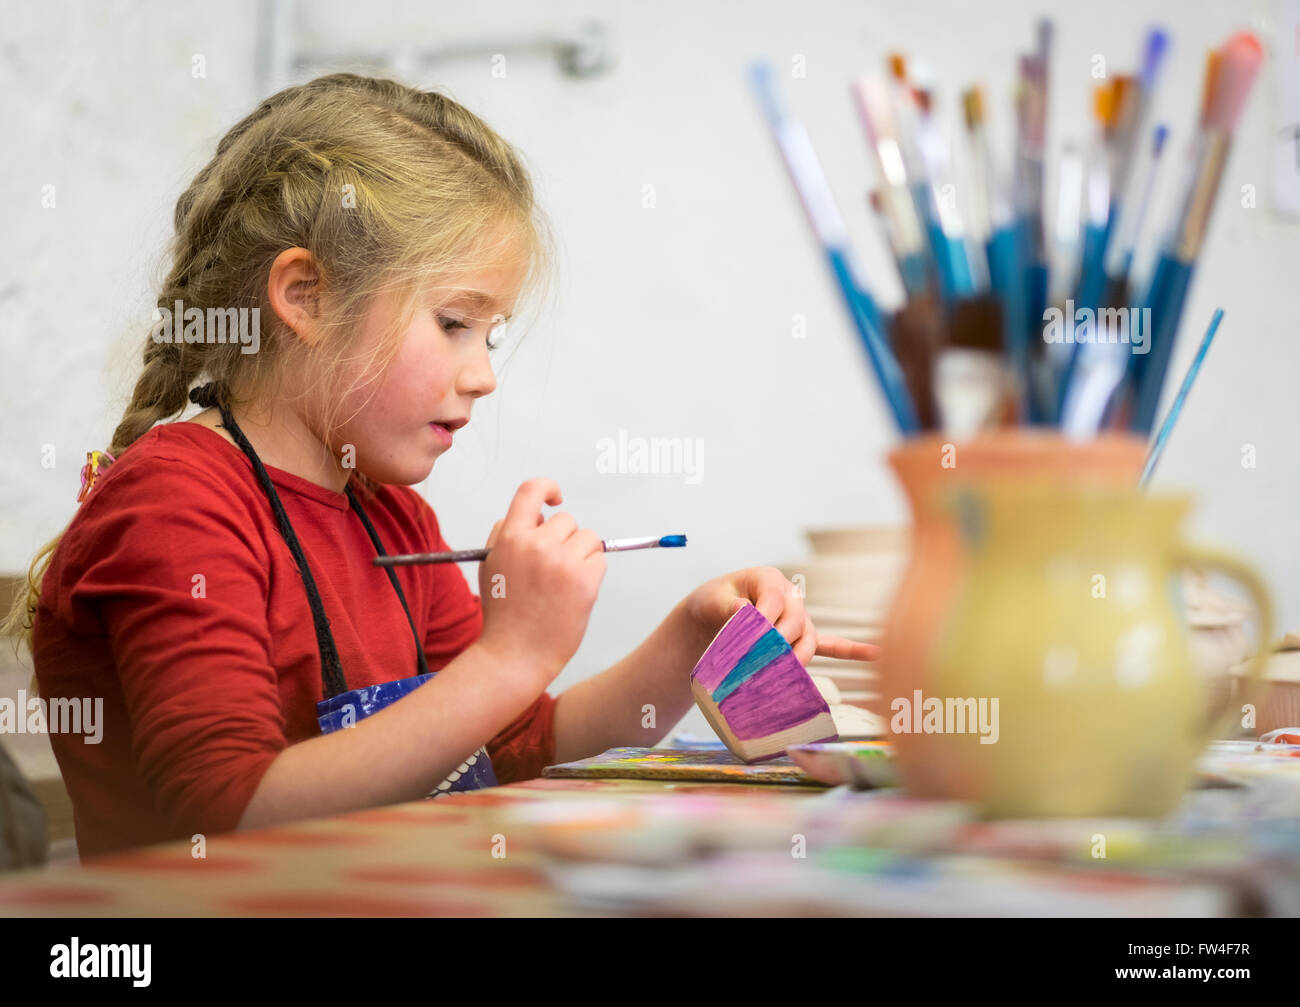 A young girl hand painting a pot in an art studio - Stock Image